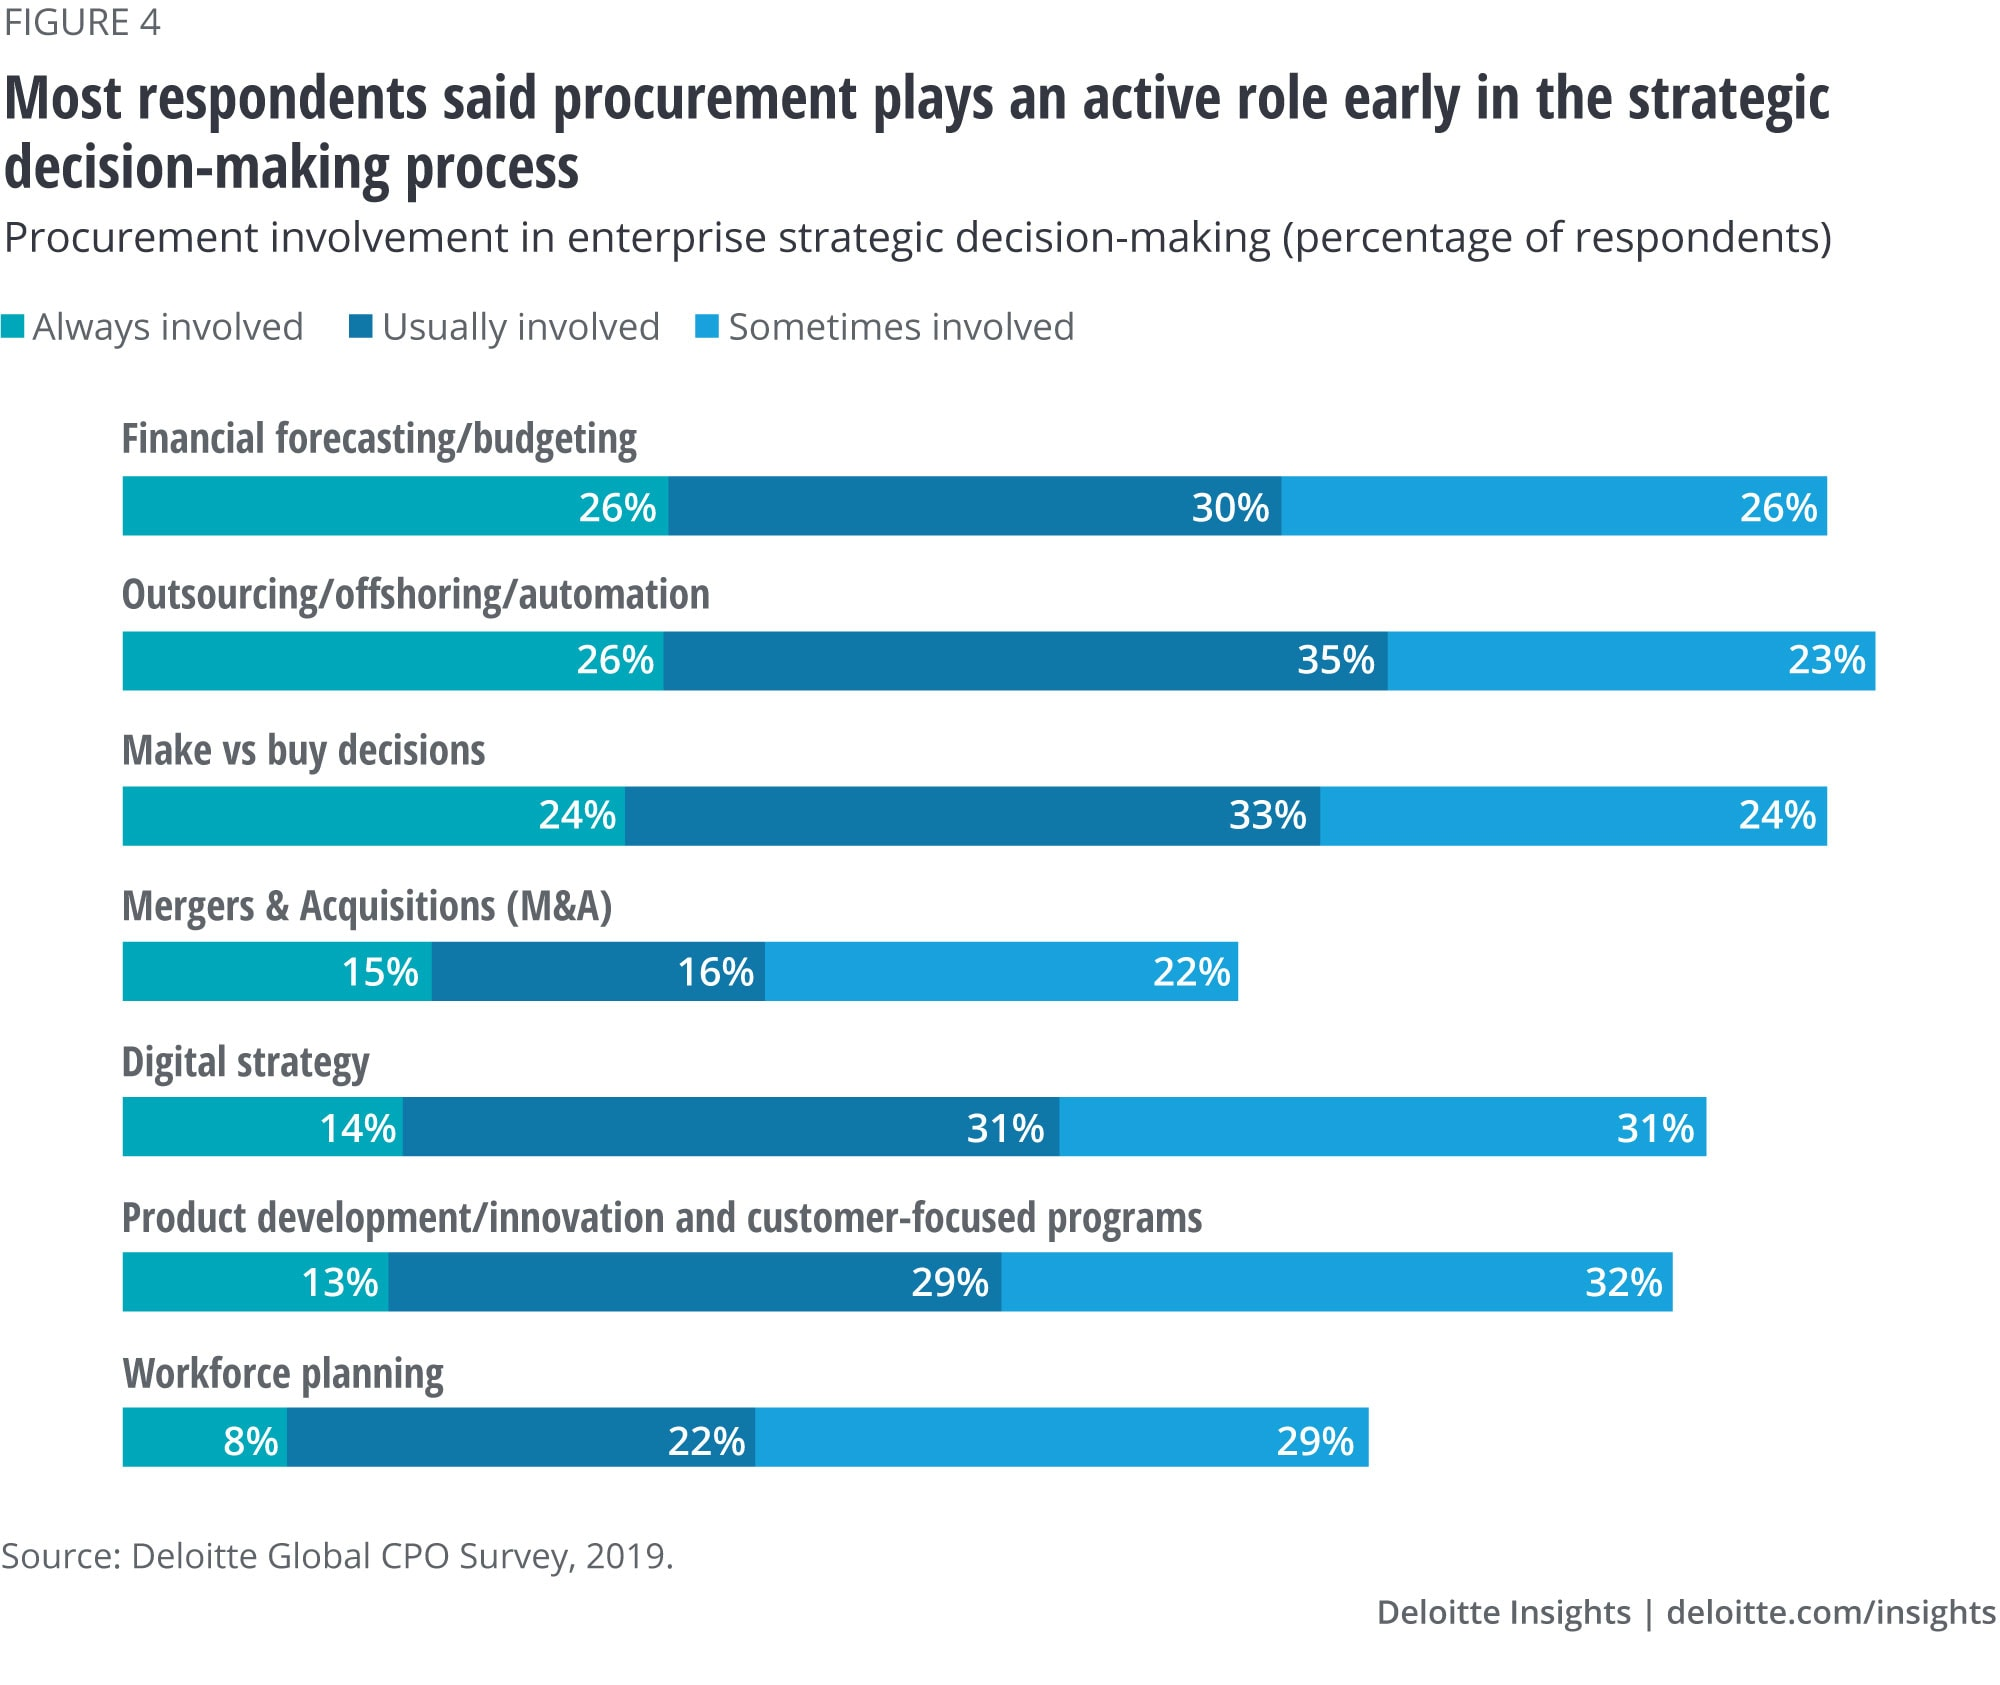 Most respondents said procurement plays an active role early in the strategic decision-making process